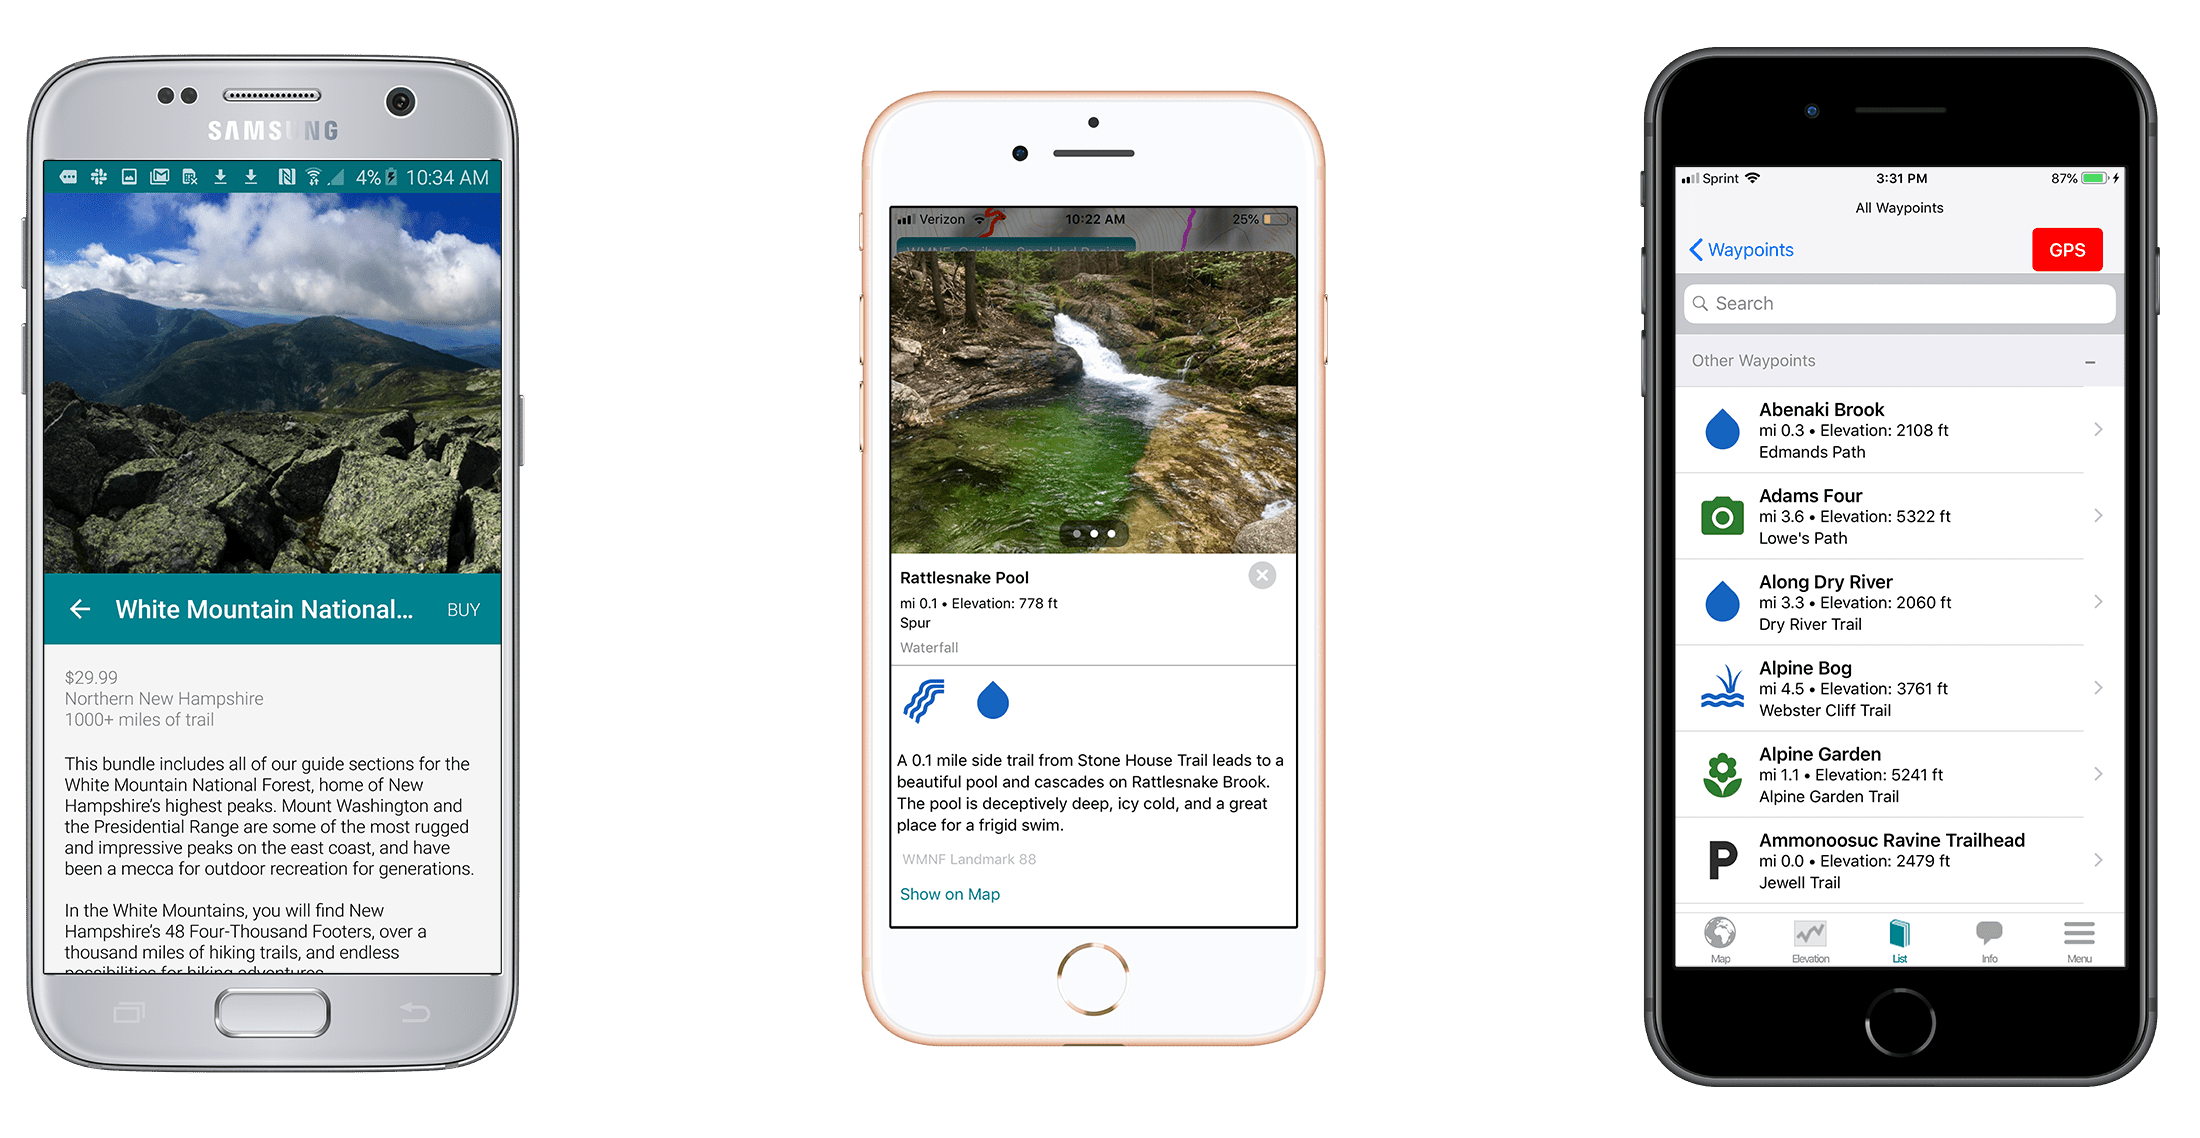 Screenshots of the Guthook Guides White Mountain National Forest guide.